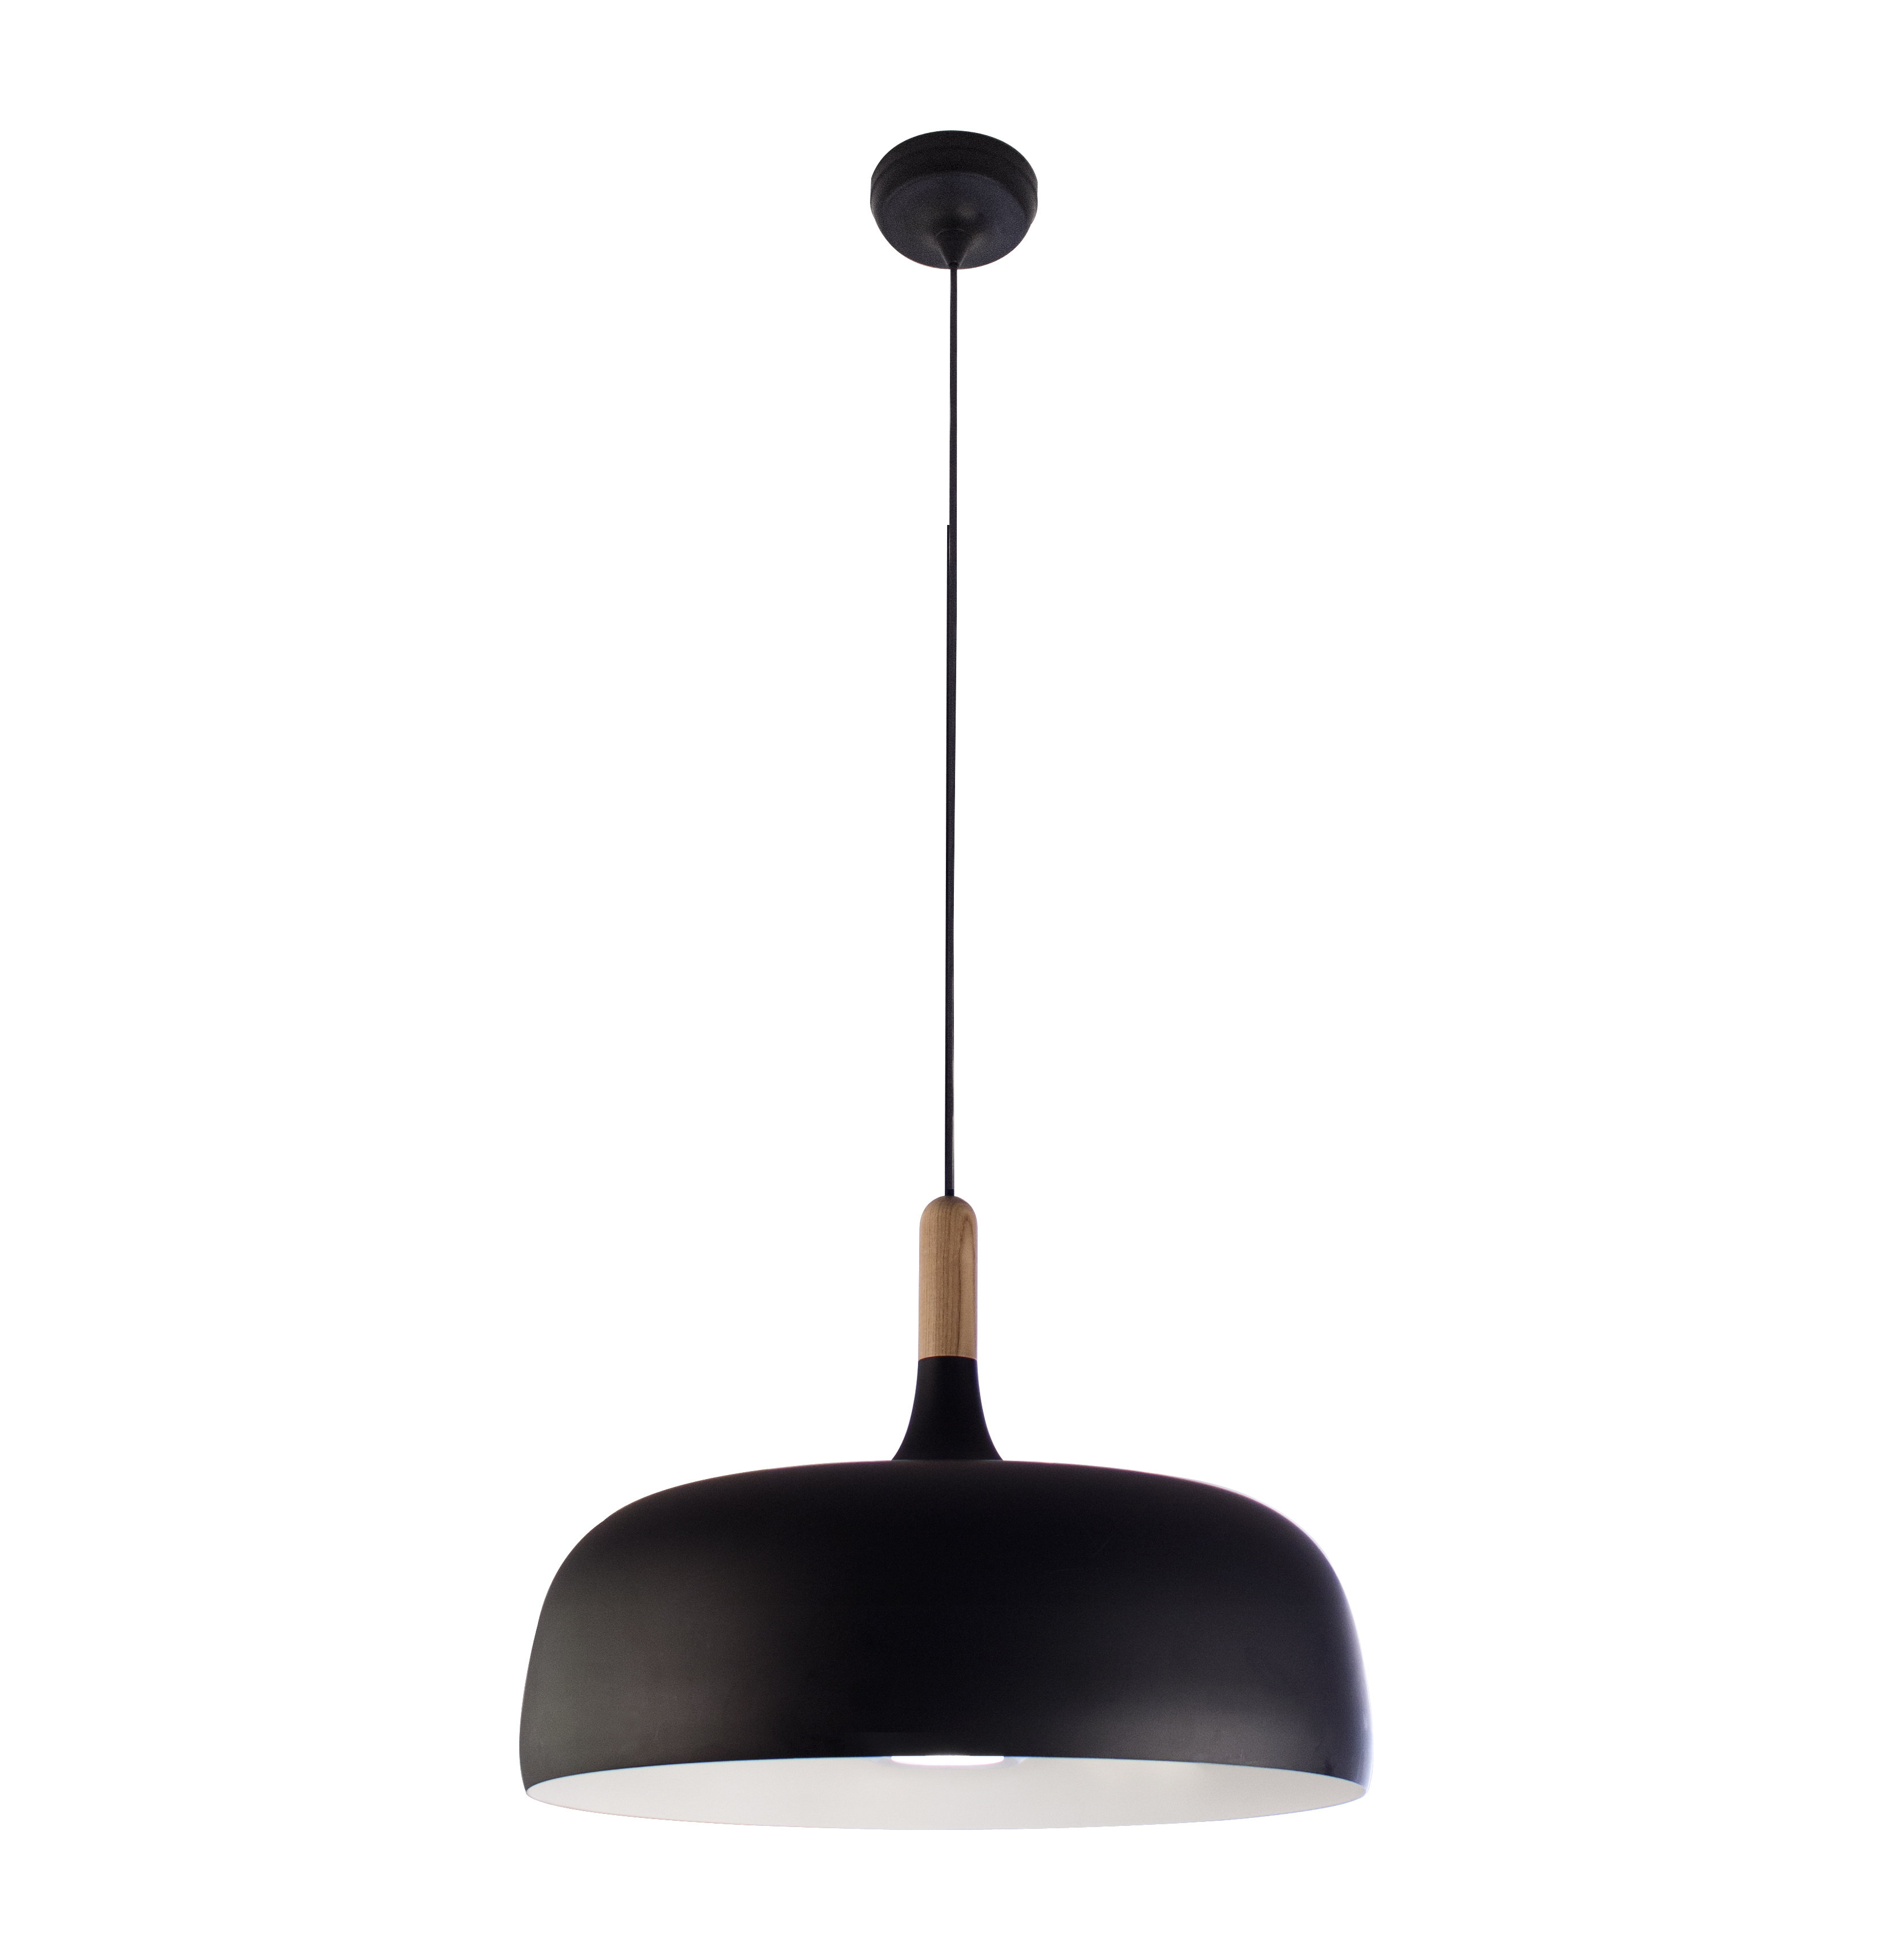 Ryker 1-Light Single Dome Pendant for Conover 1-Light Dome Pendants (Image 25 of 30)